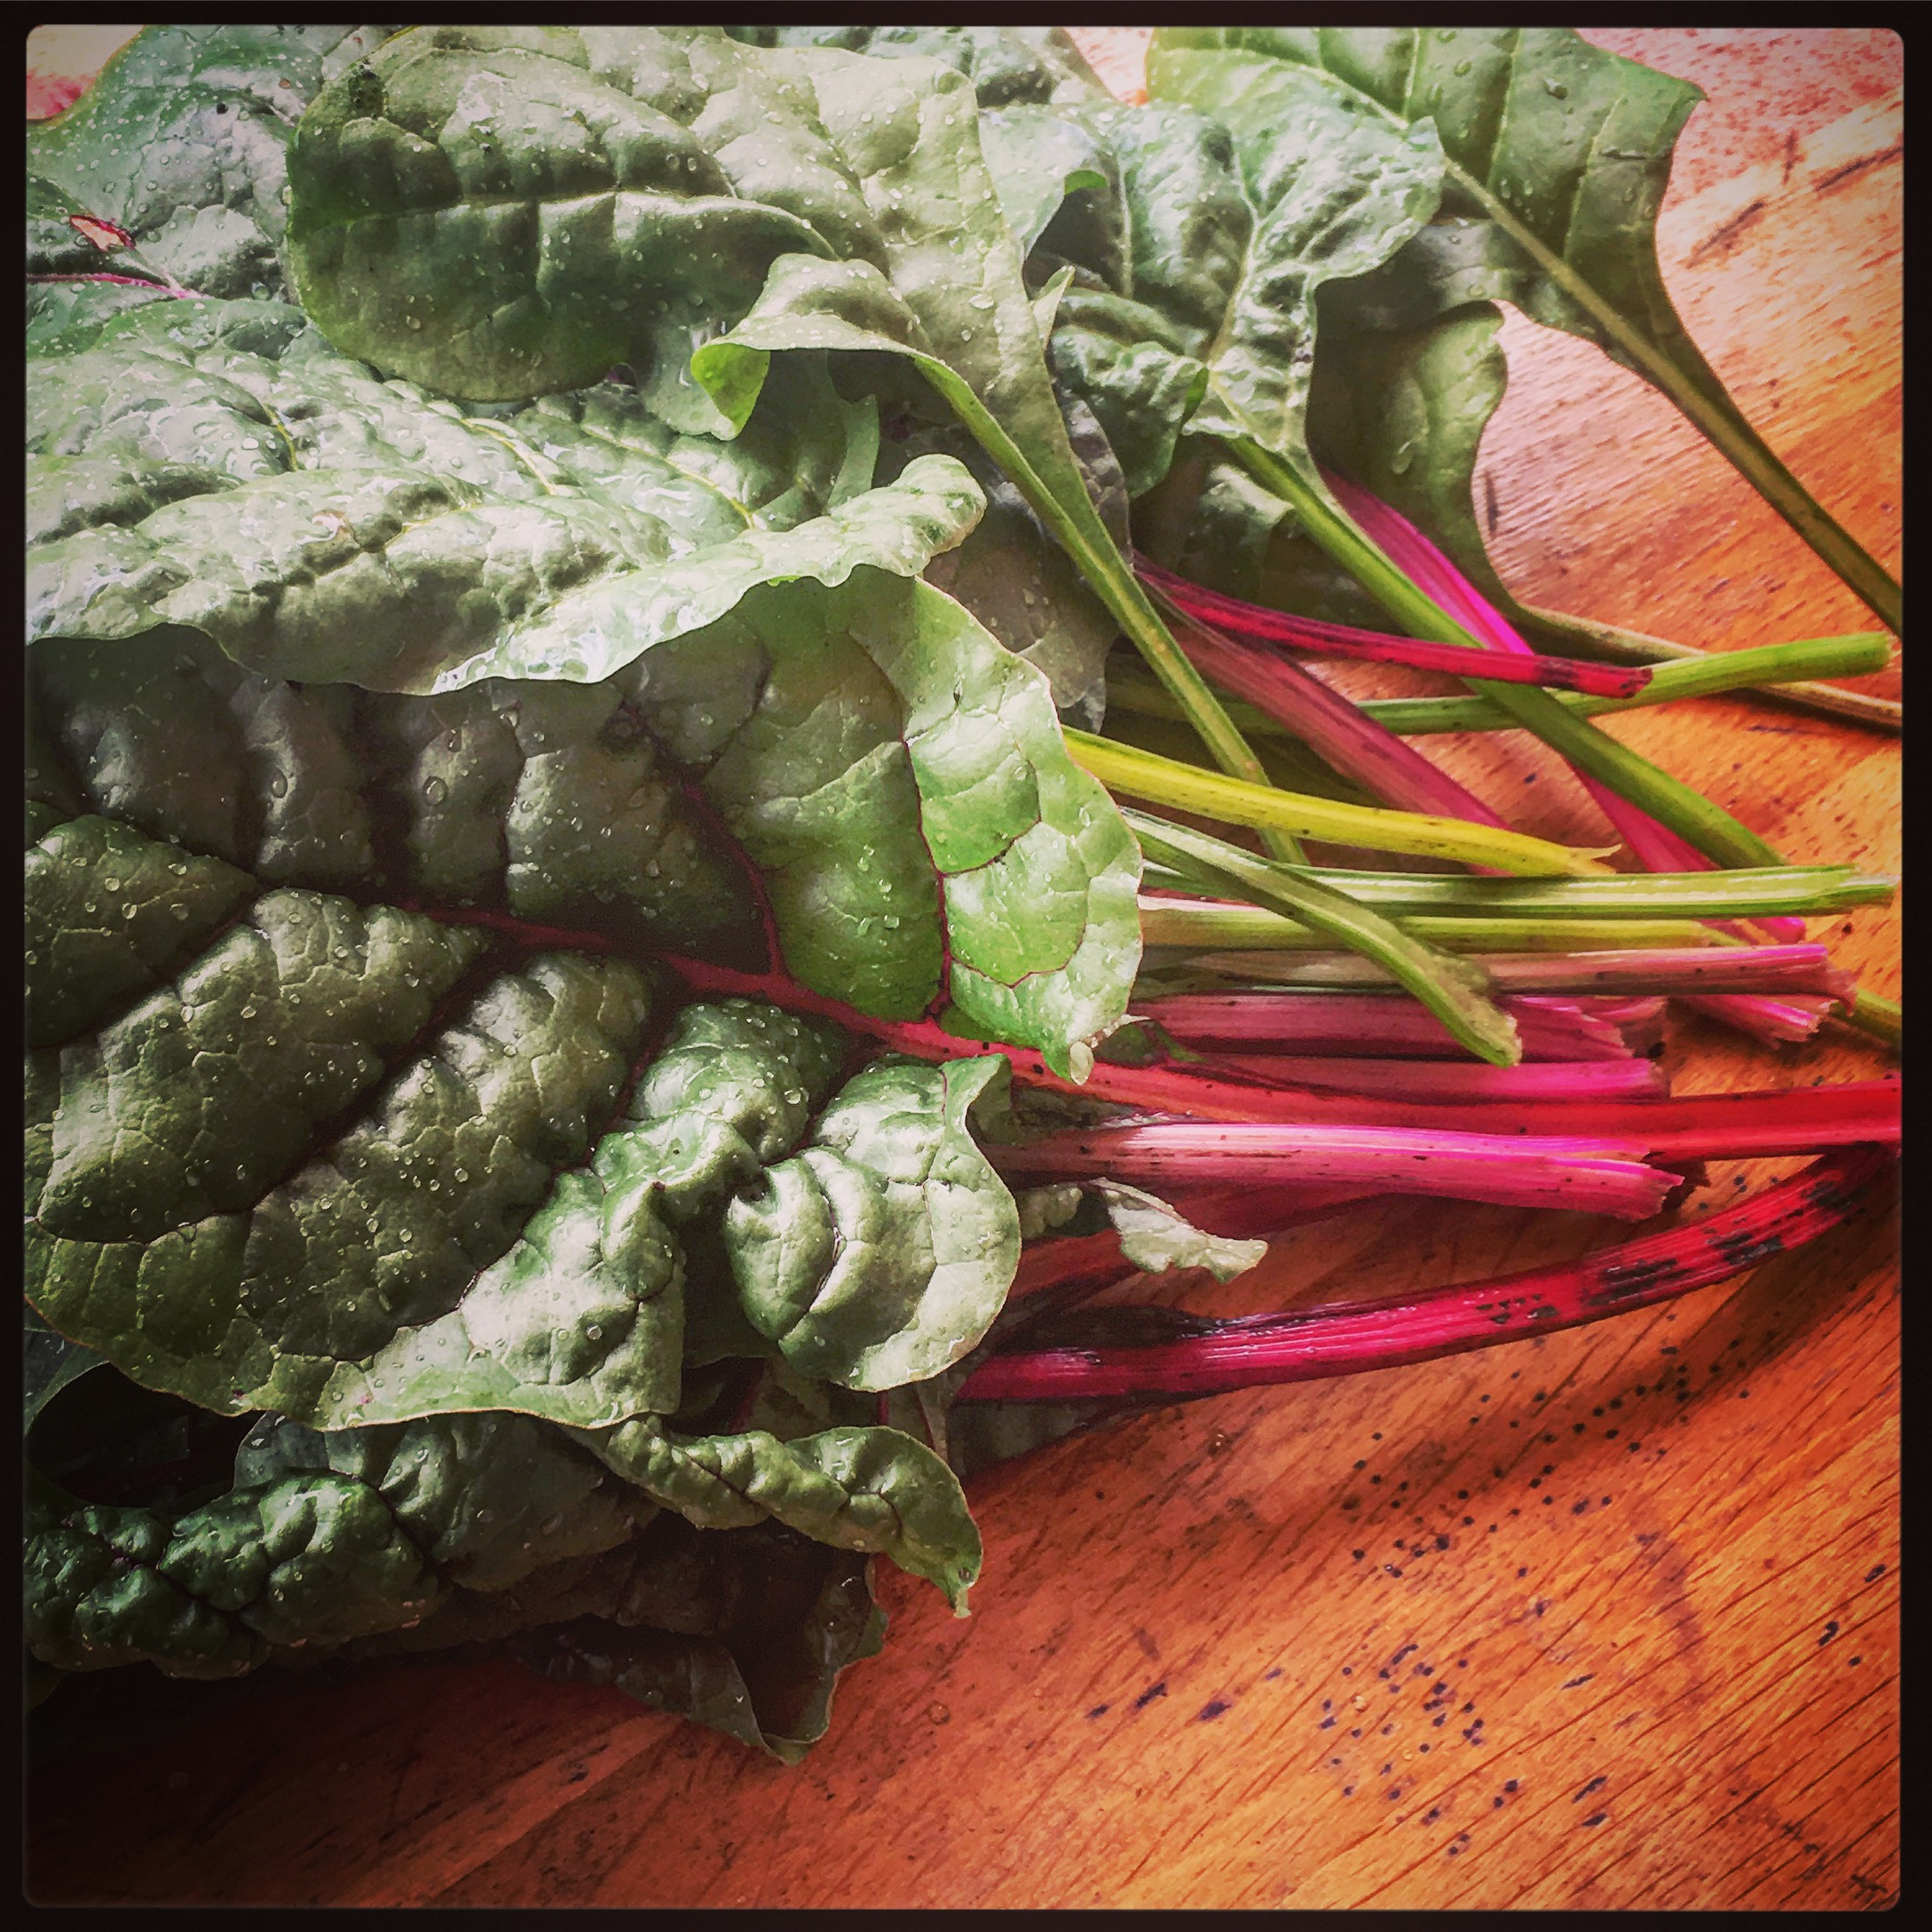 Swiss chard, grown in France obv.